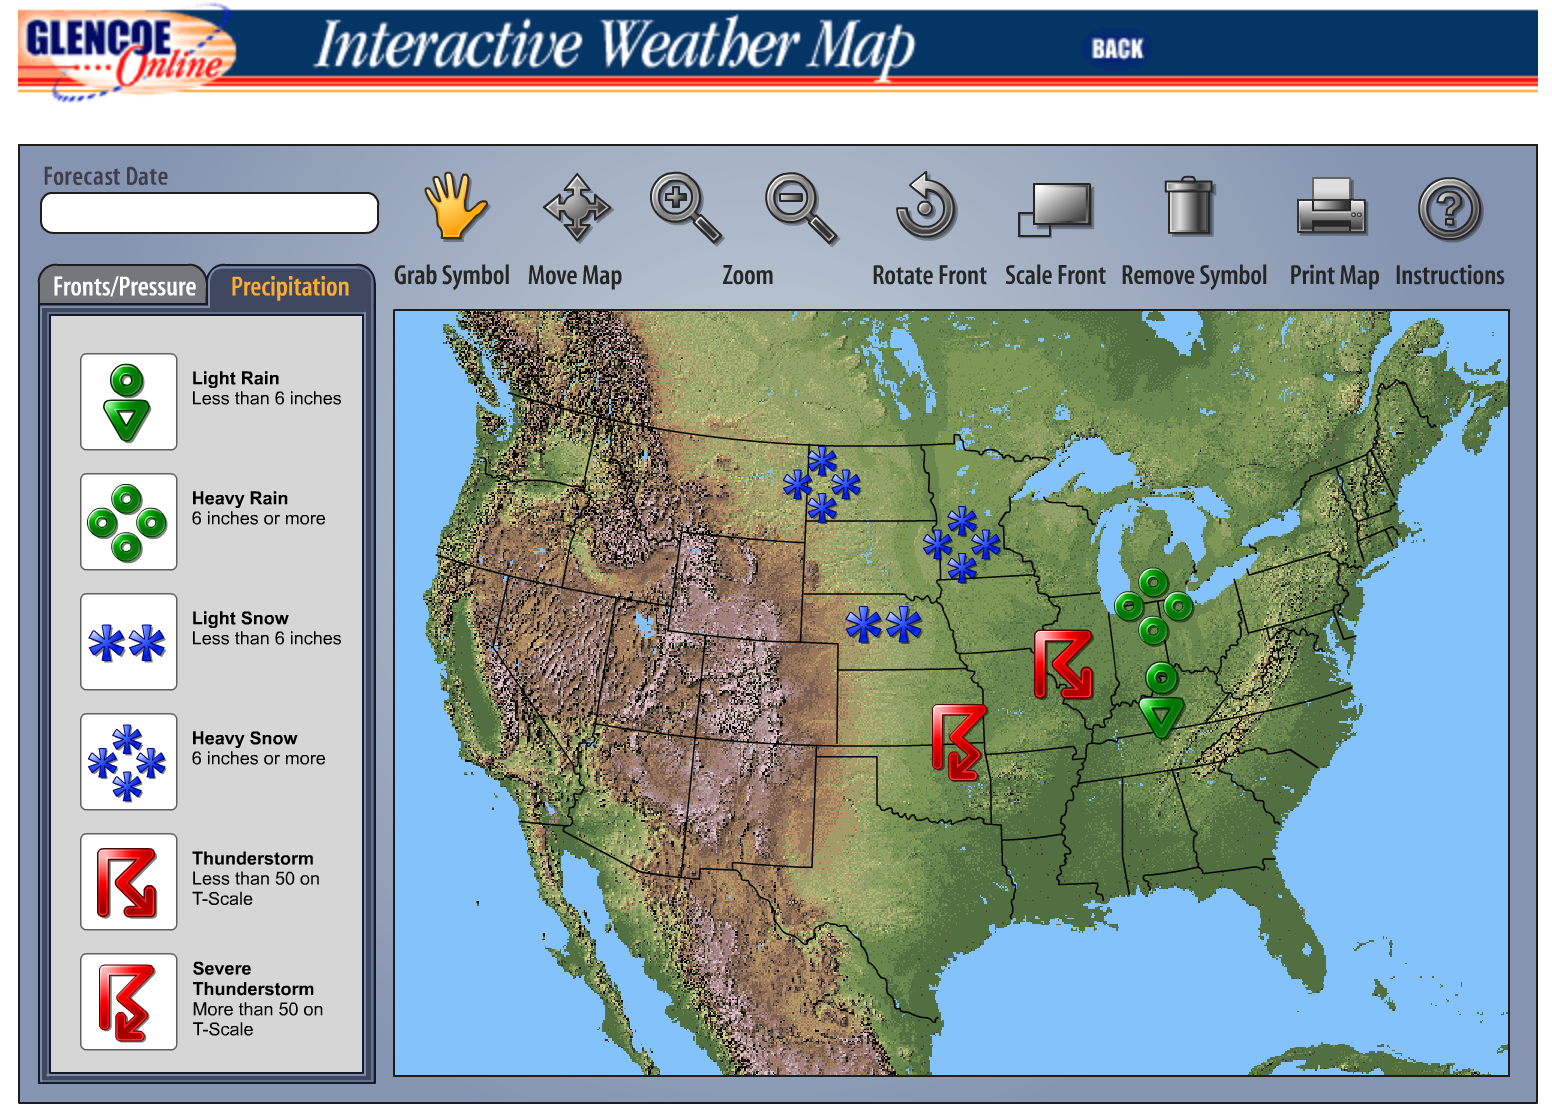 Interactive Weather Map | Science | Interactive weather map ... on forecast map, geologic map, messenger map, flight map, pressure map, monsoon map, city map, climate map, biome map, land use map, temperature map, global warming map, drought map, ohio river valley map, storm map, history map, live wallpaper map, traffic map, wind map, precipitation map,